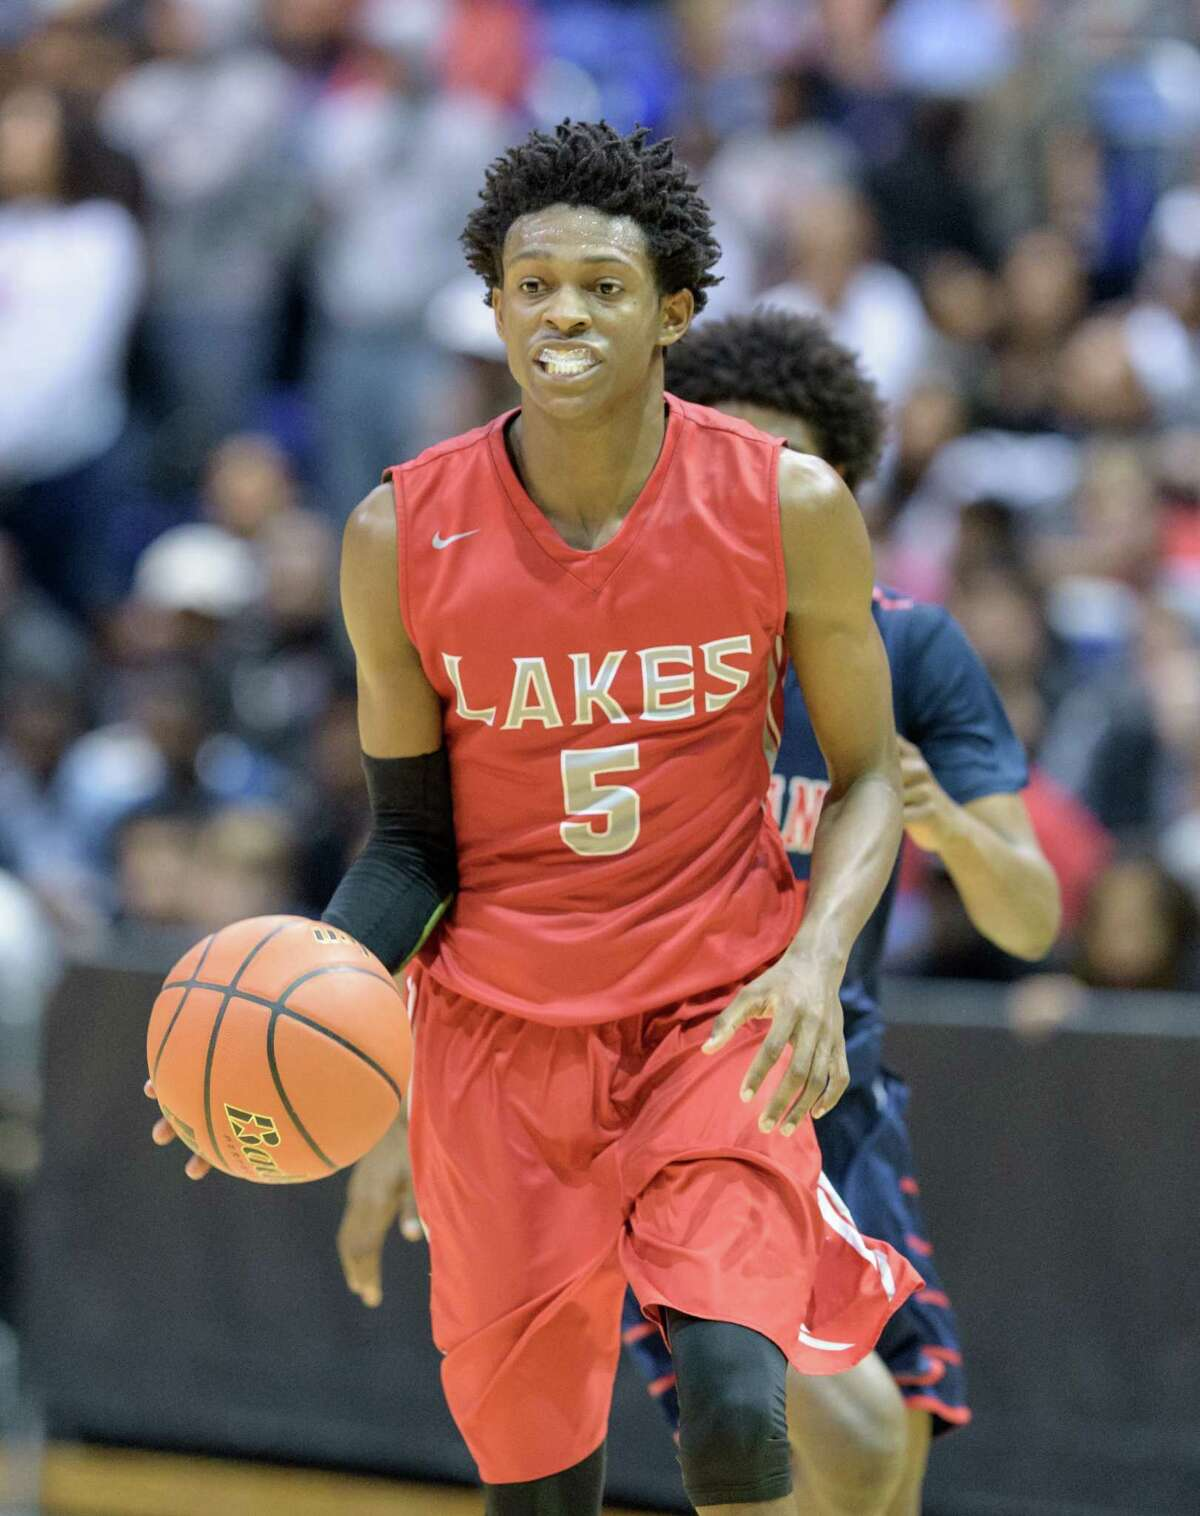 De'Aaron Fox (5) of the Cy Lakes Spartans brings the ball up the court in the second half against the Davis Falcons in high school basketball's Class 6A Regional Quarterfinals on Tuesday, March 1, 2016 at the Berry Center.